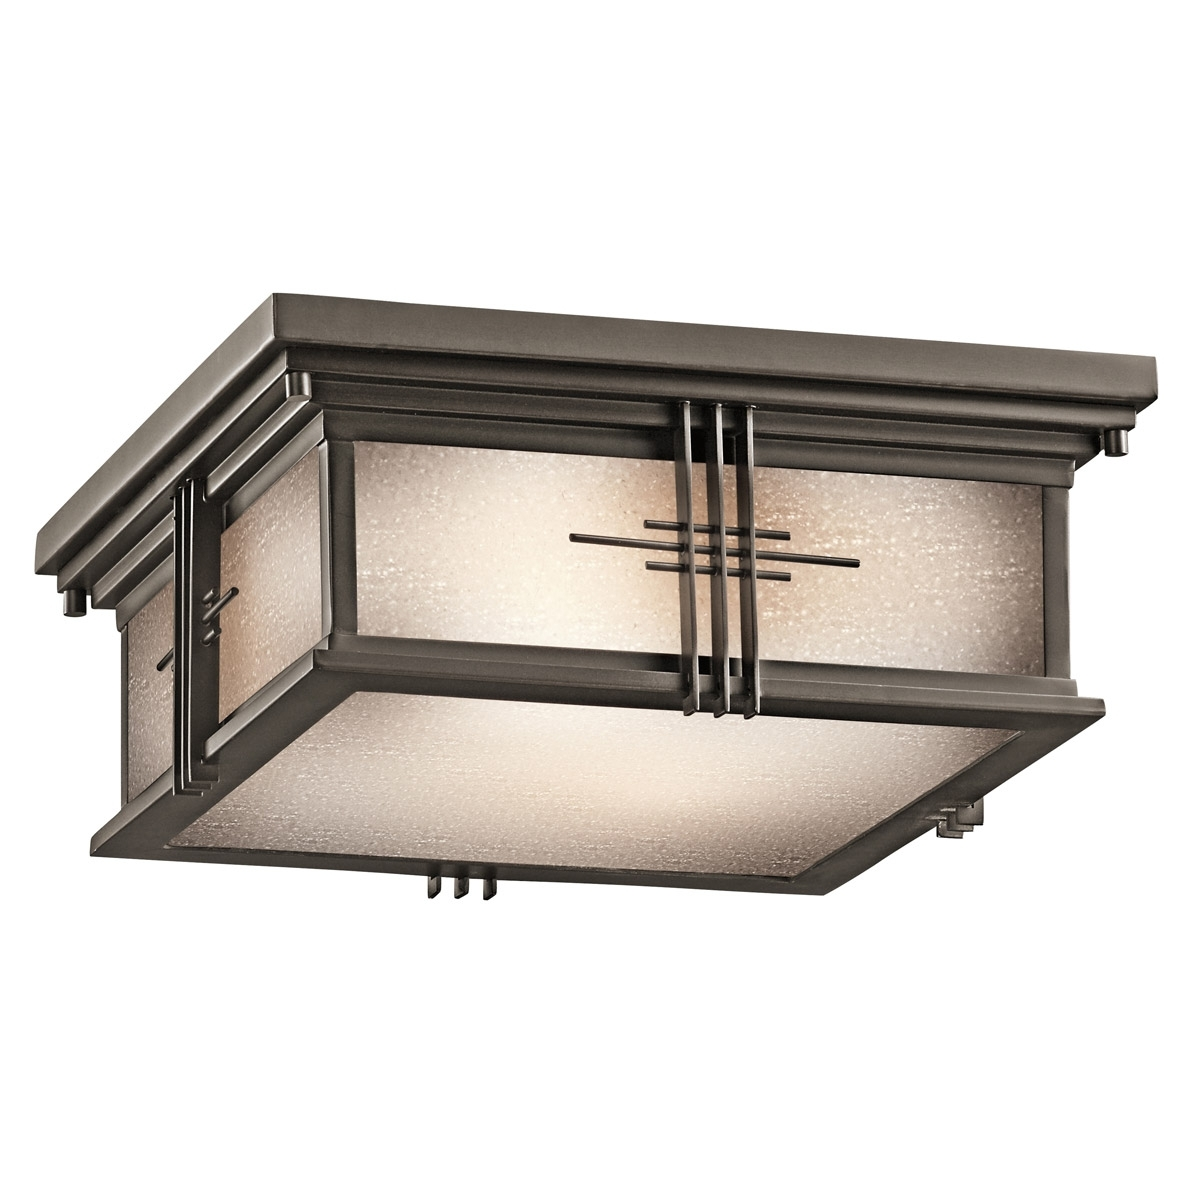 Inspiration about 49164Oz Portman Square Outdoor Flush Mount Ceiling Fixture With Regard To Decorative Outdoor Ceiling Lights (#11 of 15)